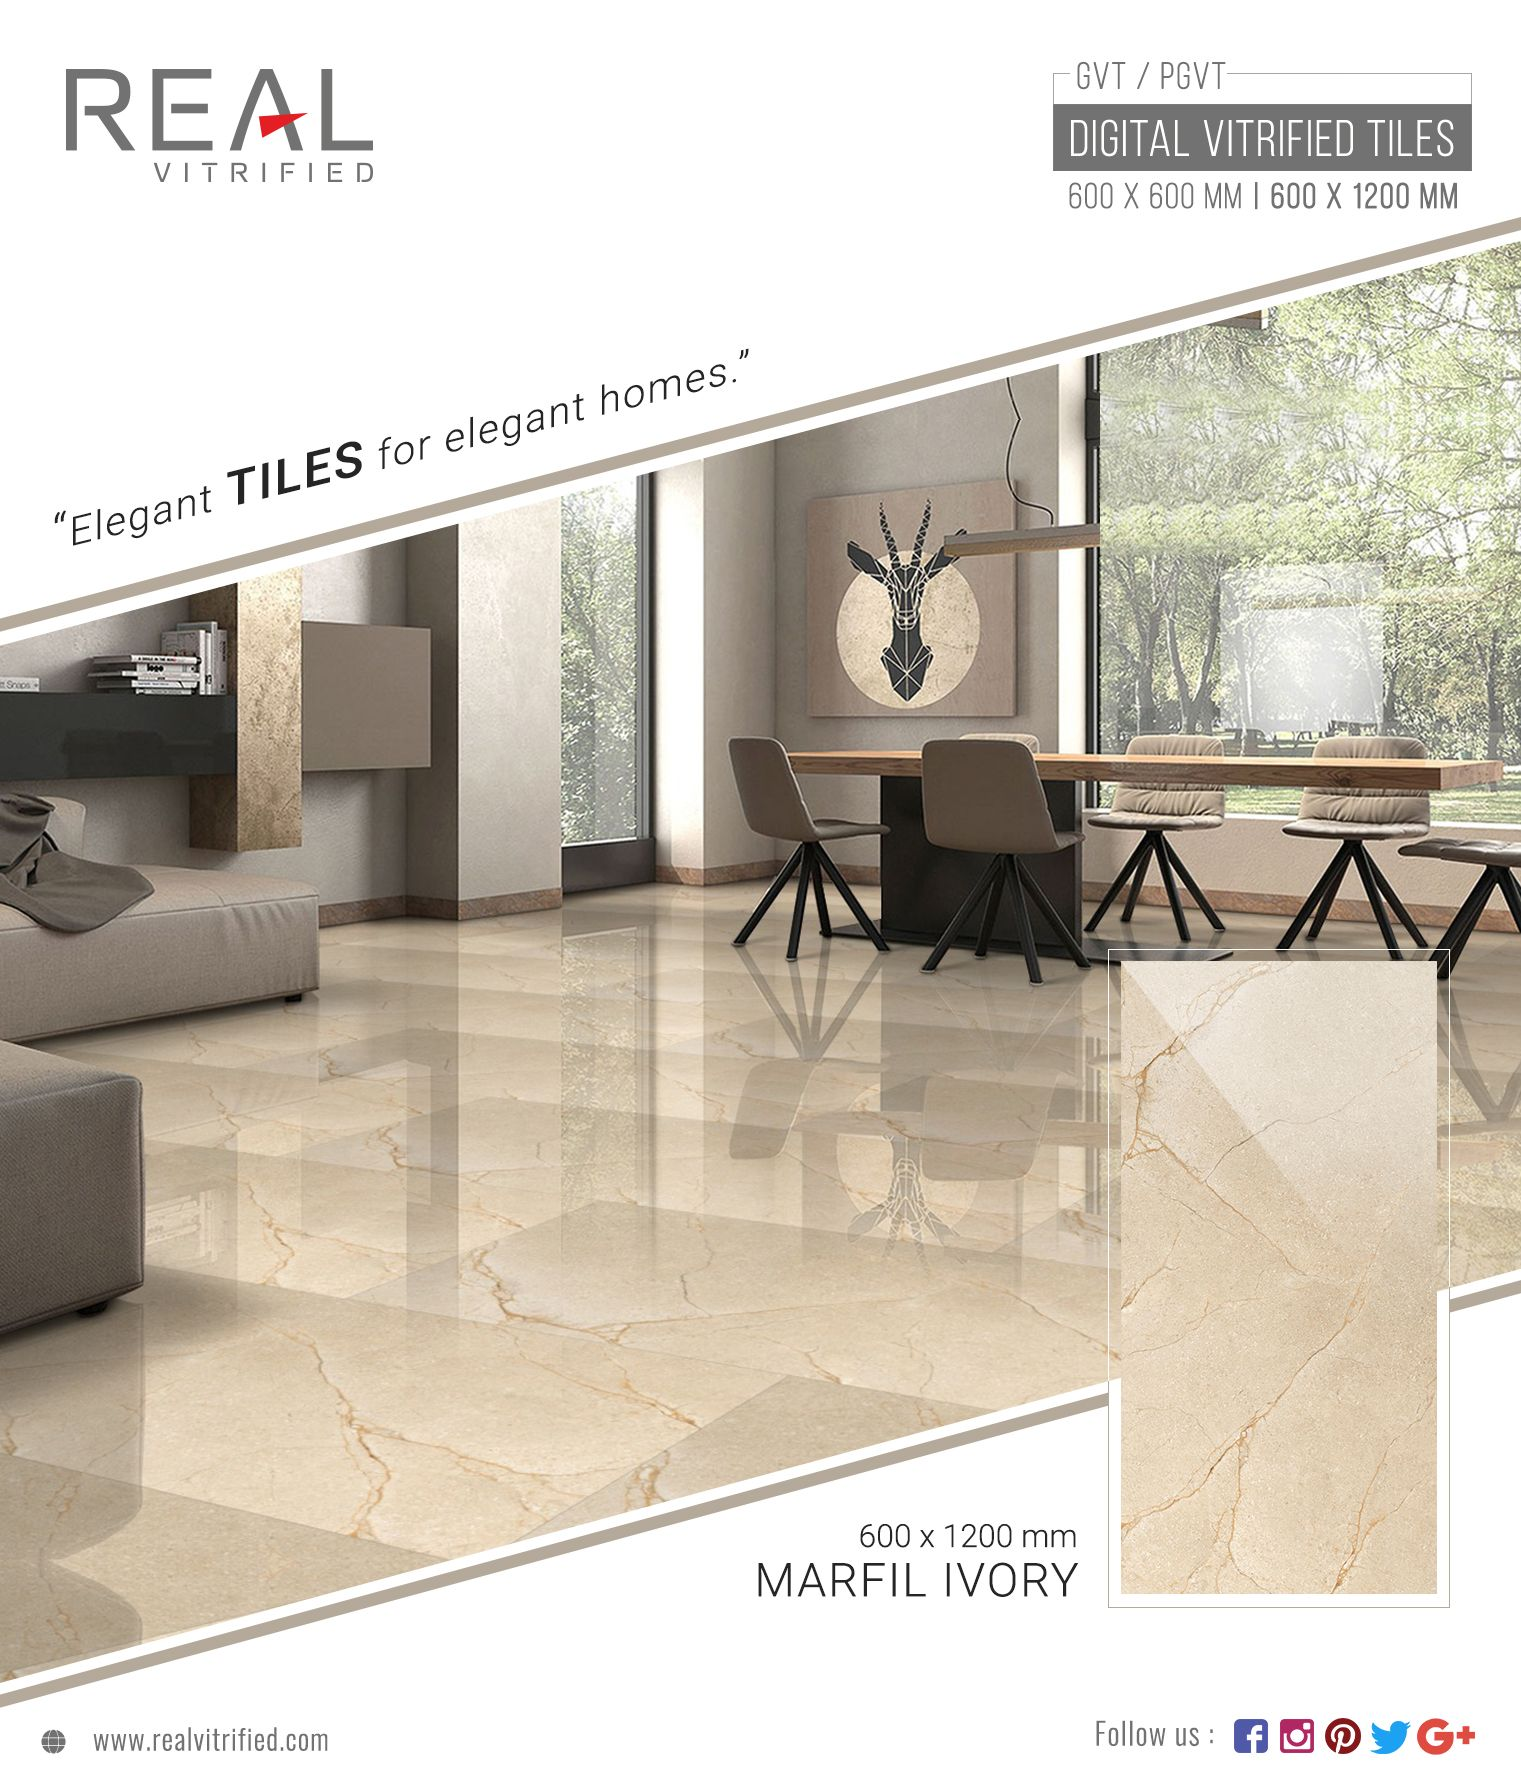 Pin By Sheikh Uzair On Pmg In 2020 Tile Design Elegant Tiles Vitrified Tiles